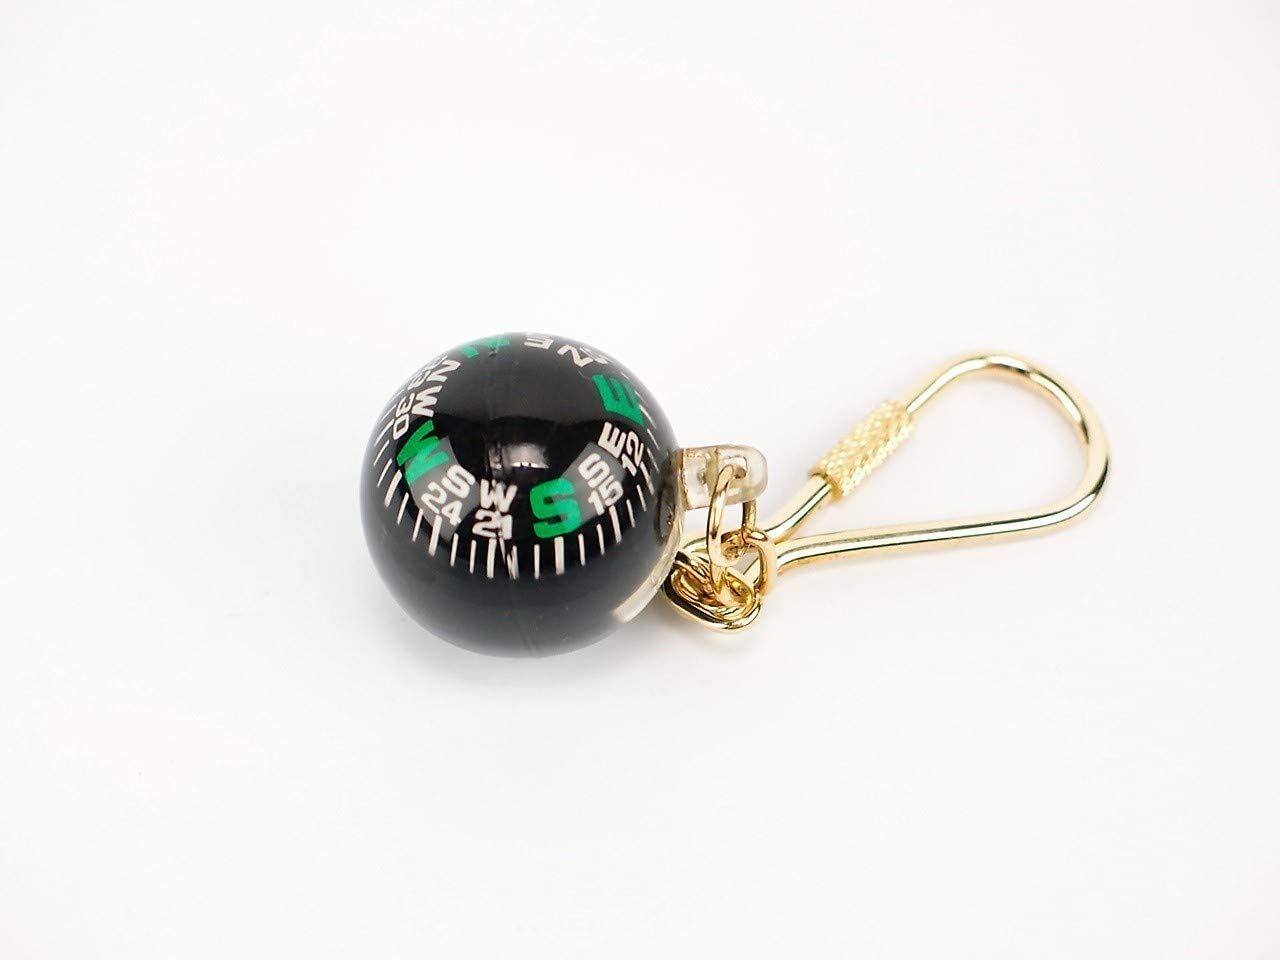 Ball Compass Shore And More Gifts Brass Keyring